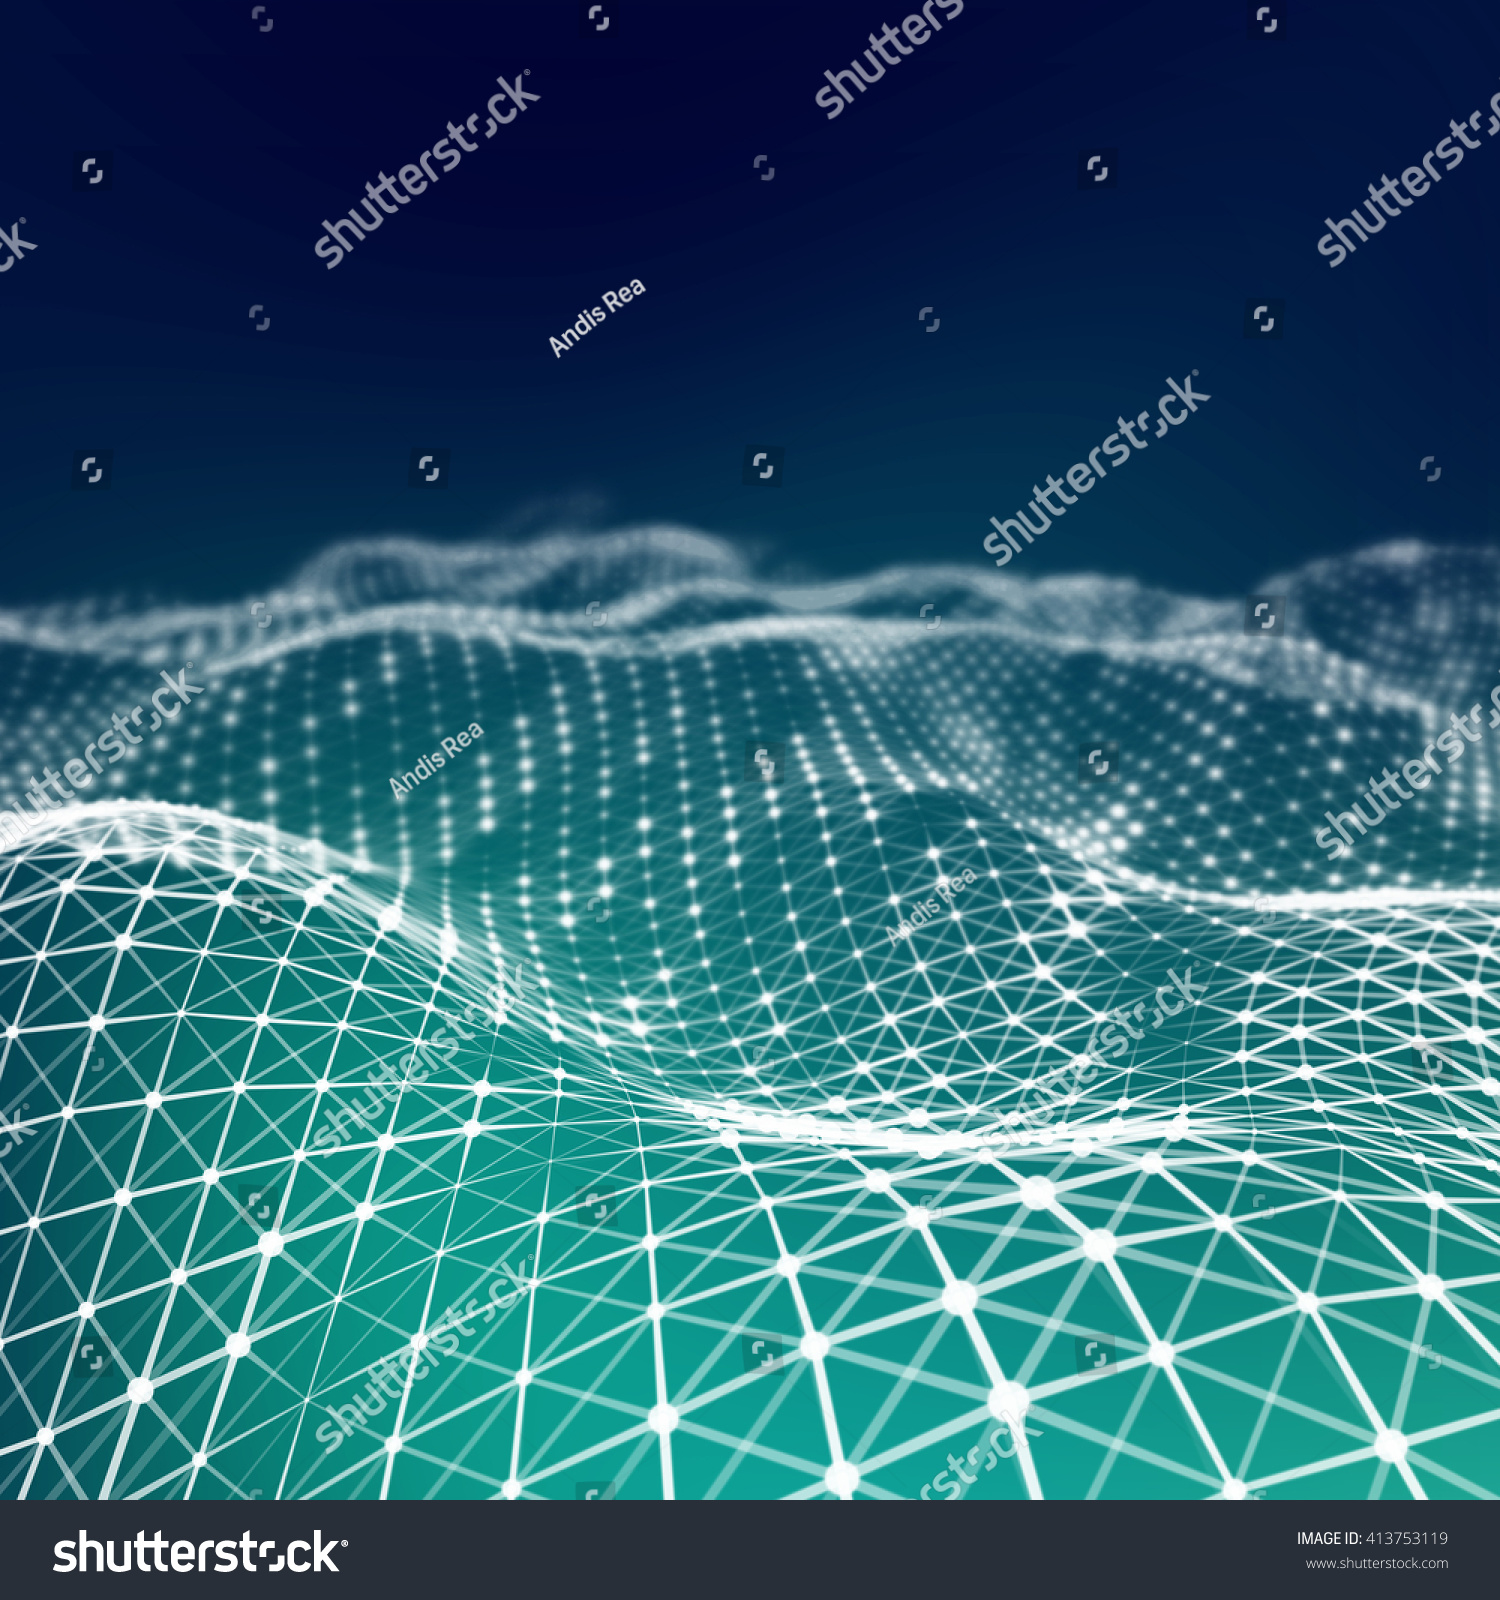 Abstract Low Poly Background Plexus Low Stock Illustration 413753119 ...